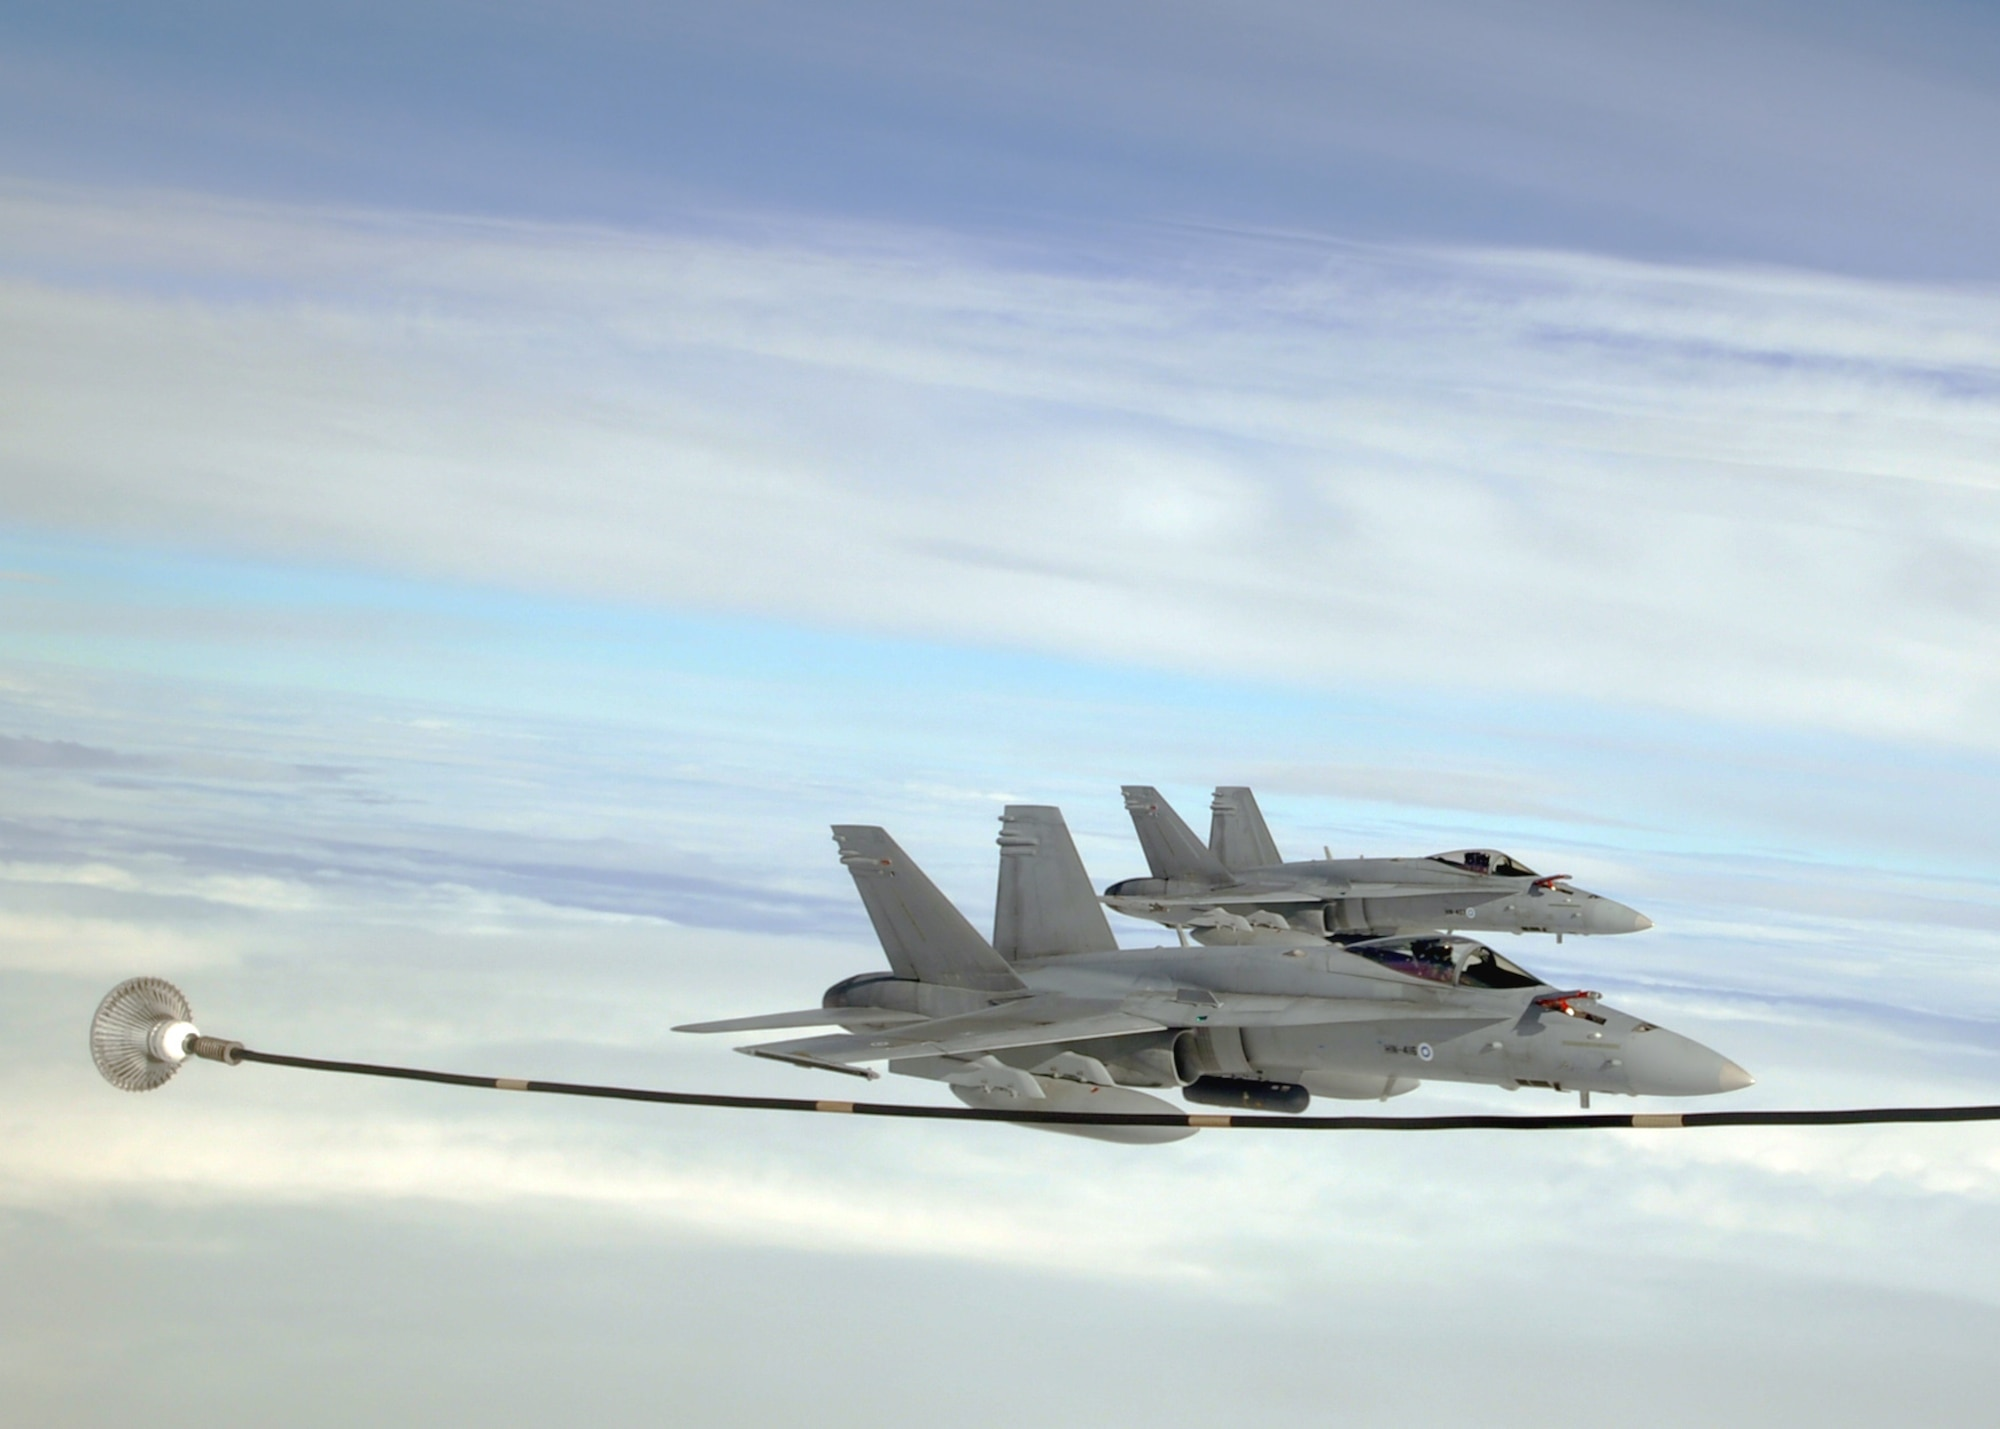 """Two Finnish Air Force F-18C Hornets prepare to refuel with a U.S. Air Force KC-135R Stratotanker Sept. 17, 2013, over Norway during the Arctic Challenge exercise. The Hornets formed a """"Red Team"""" strike package with six F-15E Strike Eagles from the 48th Fighter Wing as they attempted to """"raid"""" an enemy command post during this portion of the exercise."""